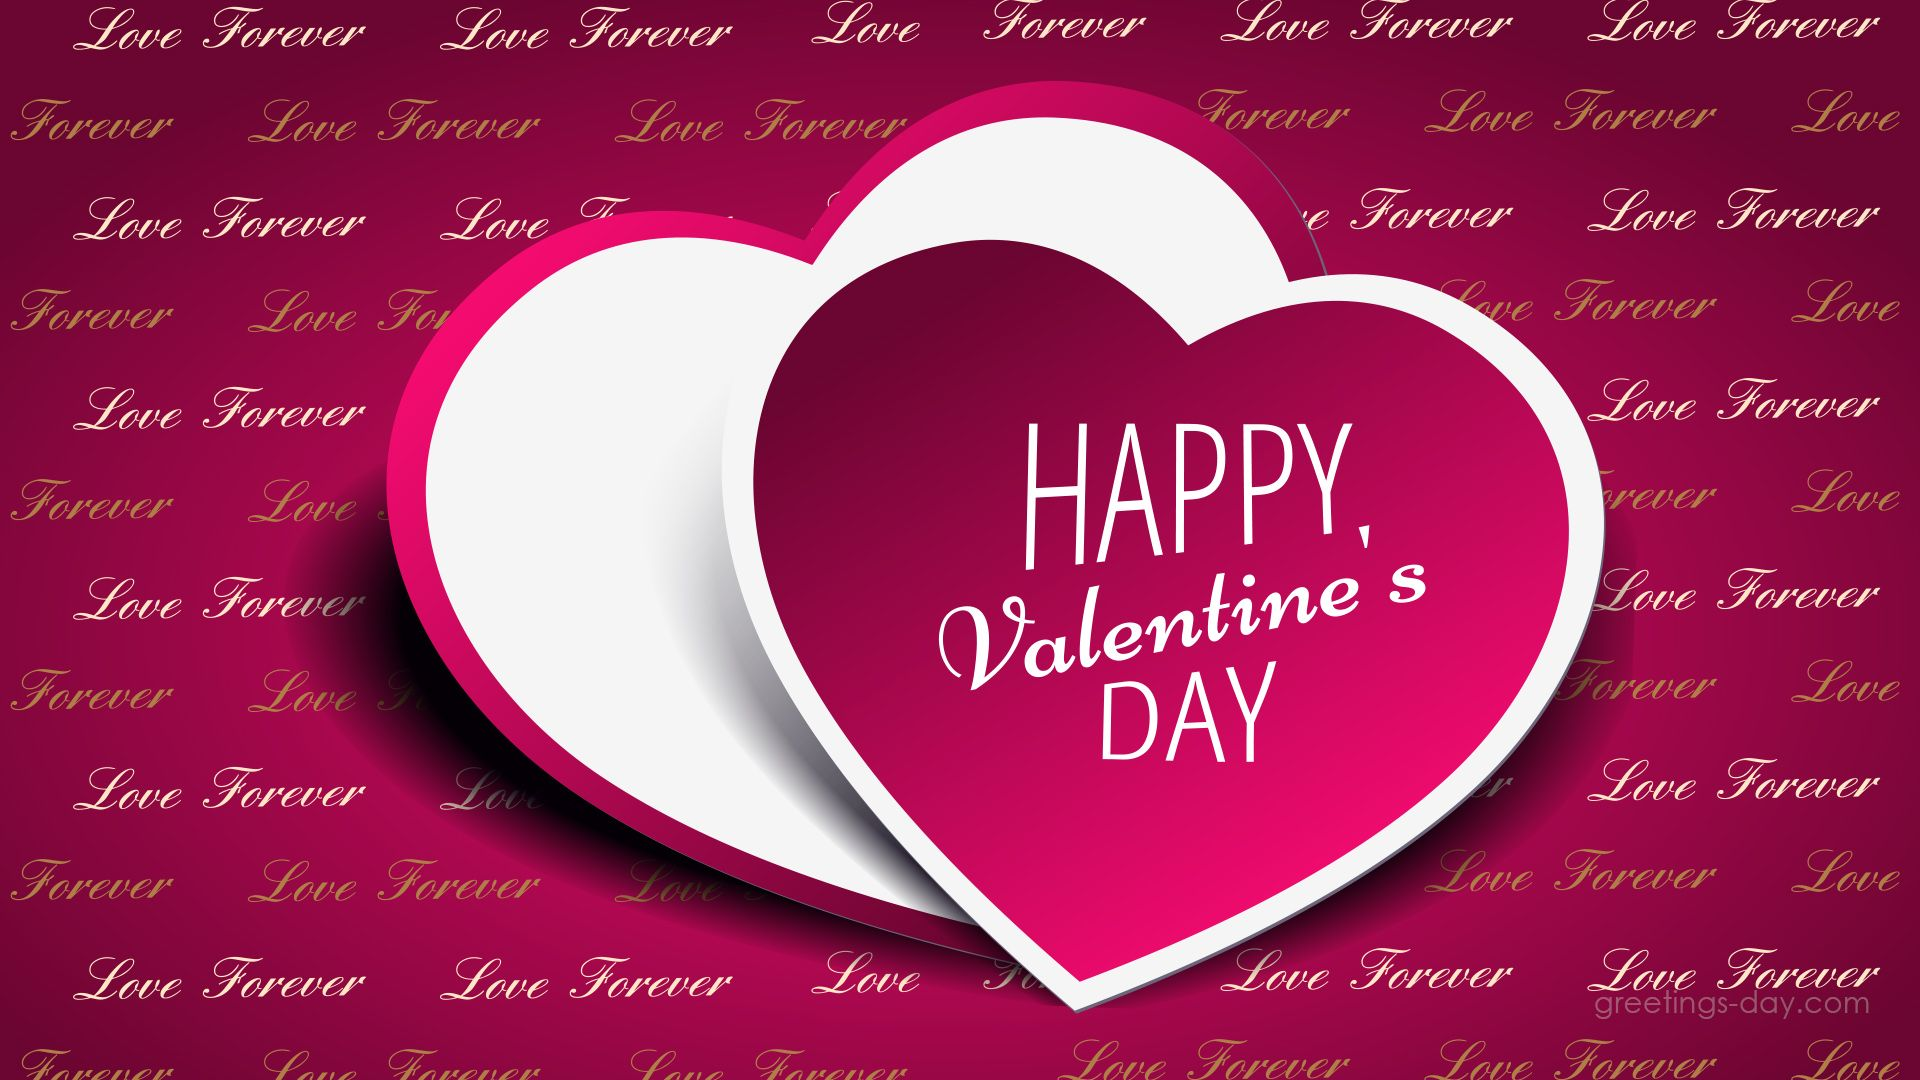 Love Valentines Day Quotes Greetingspics Love Valentinesday Httpgreetingsday